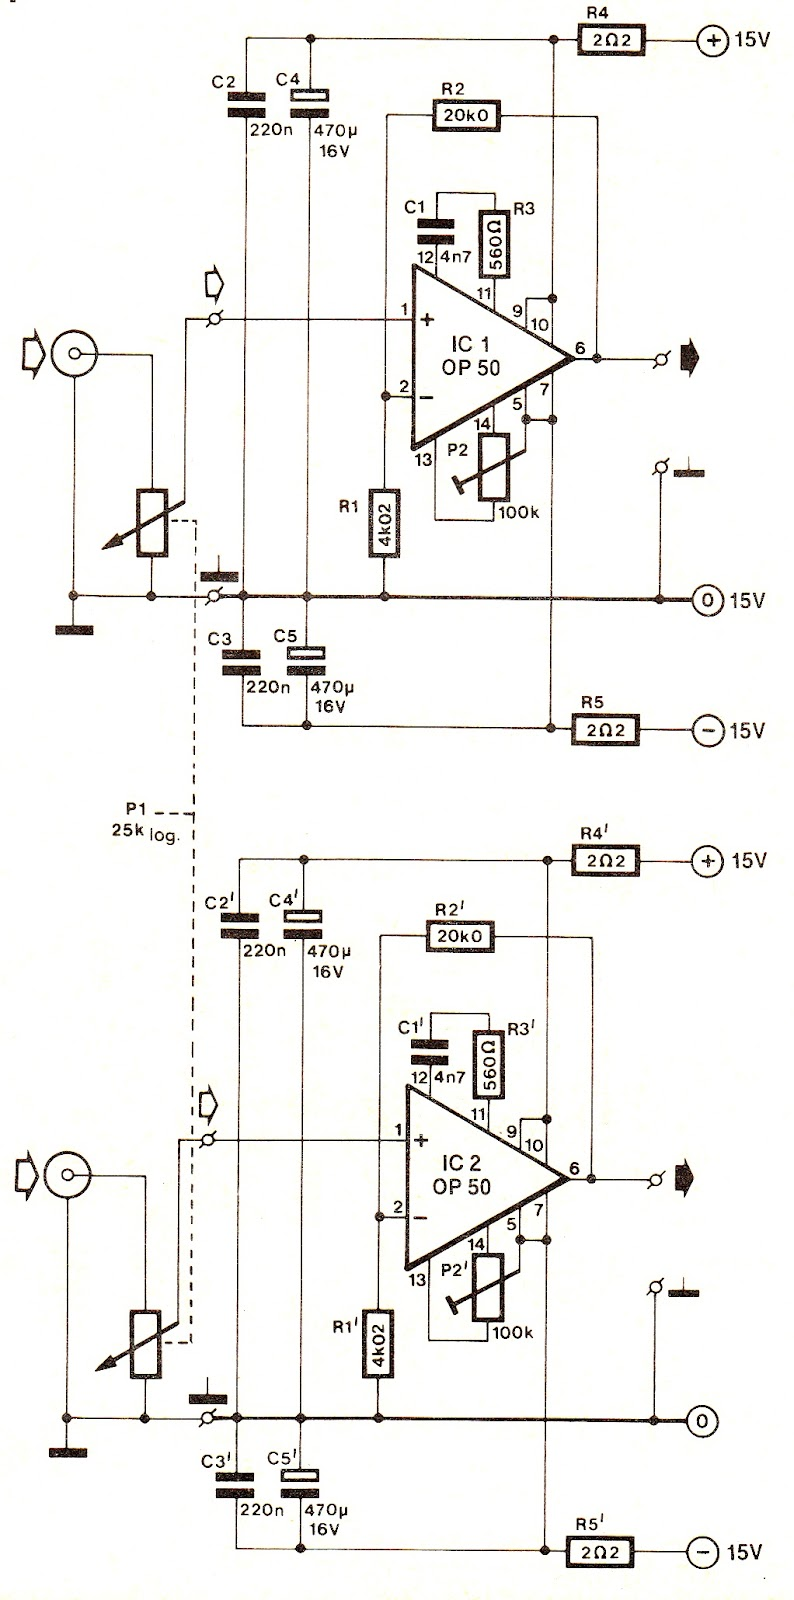 constant electronic load circuit basiccircuit circuit diagram constant electronic load circuit basiccircuit circuit diagram [ 794 x 1600 Pixel ]